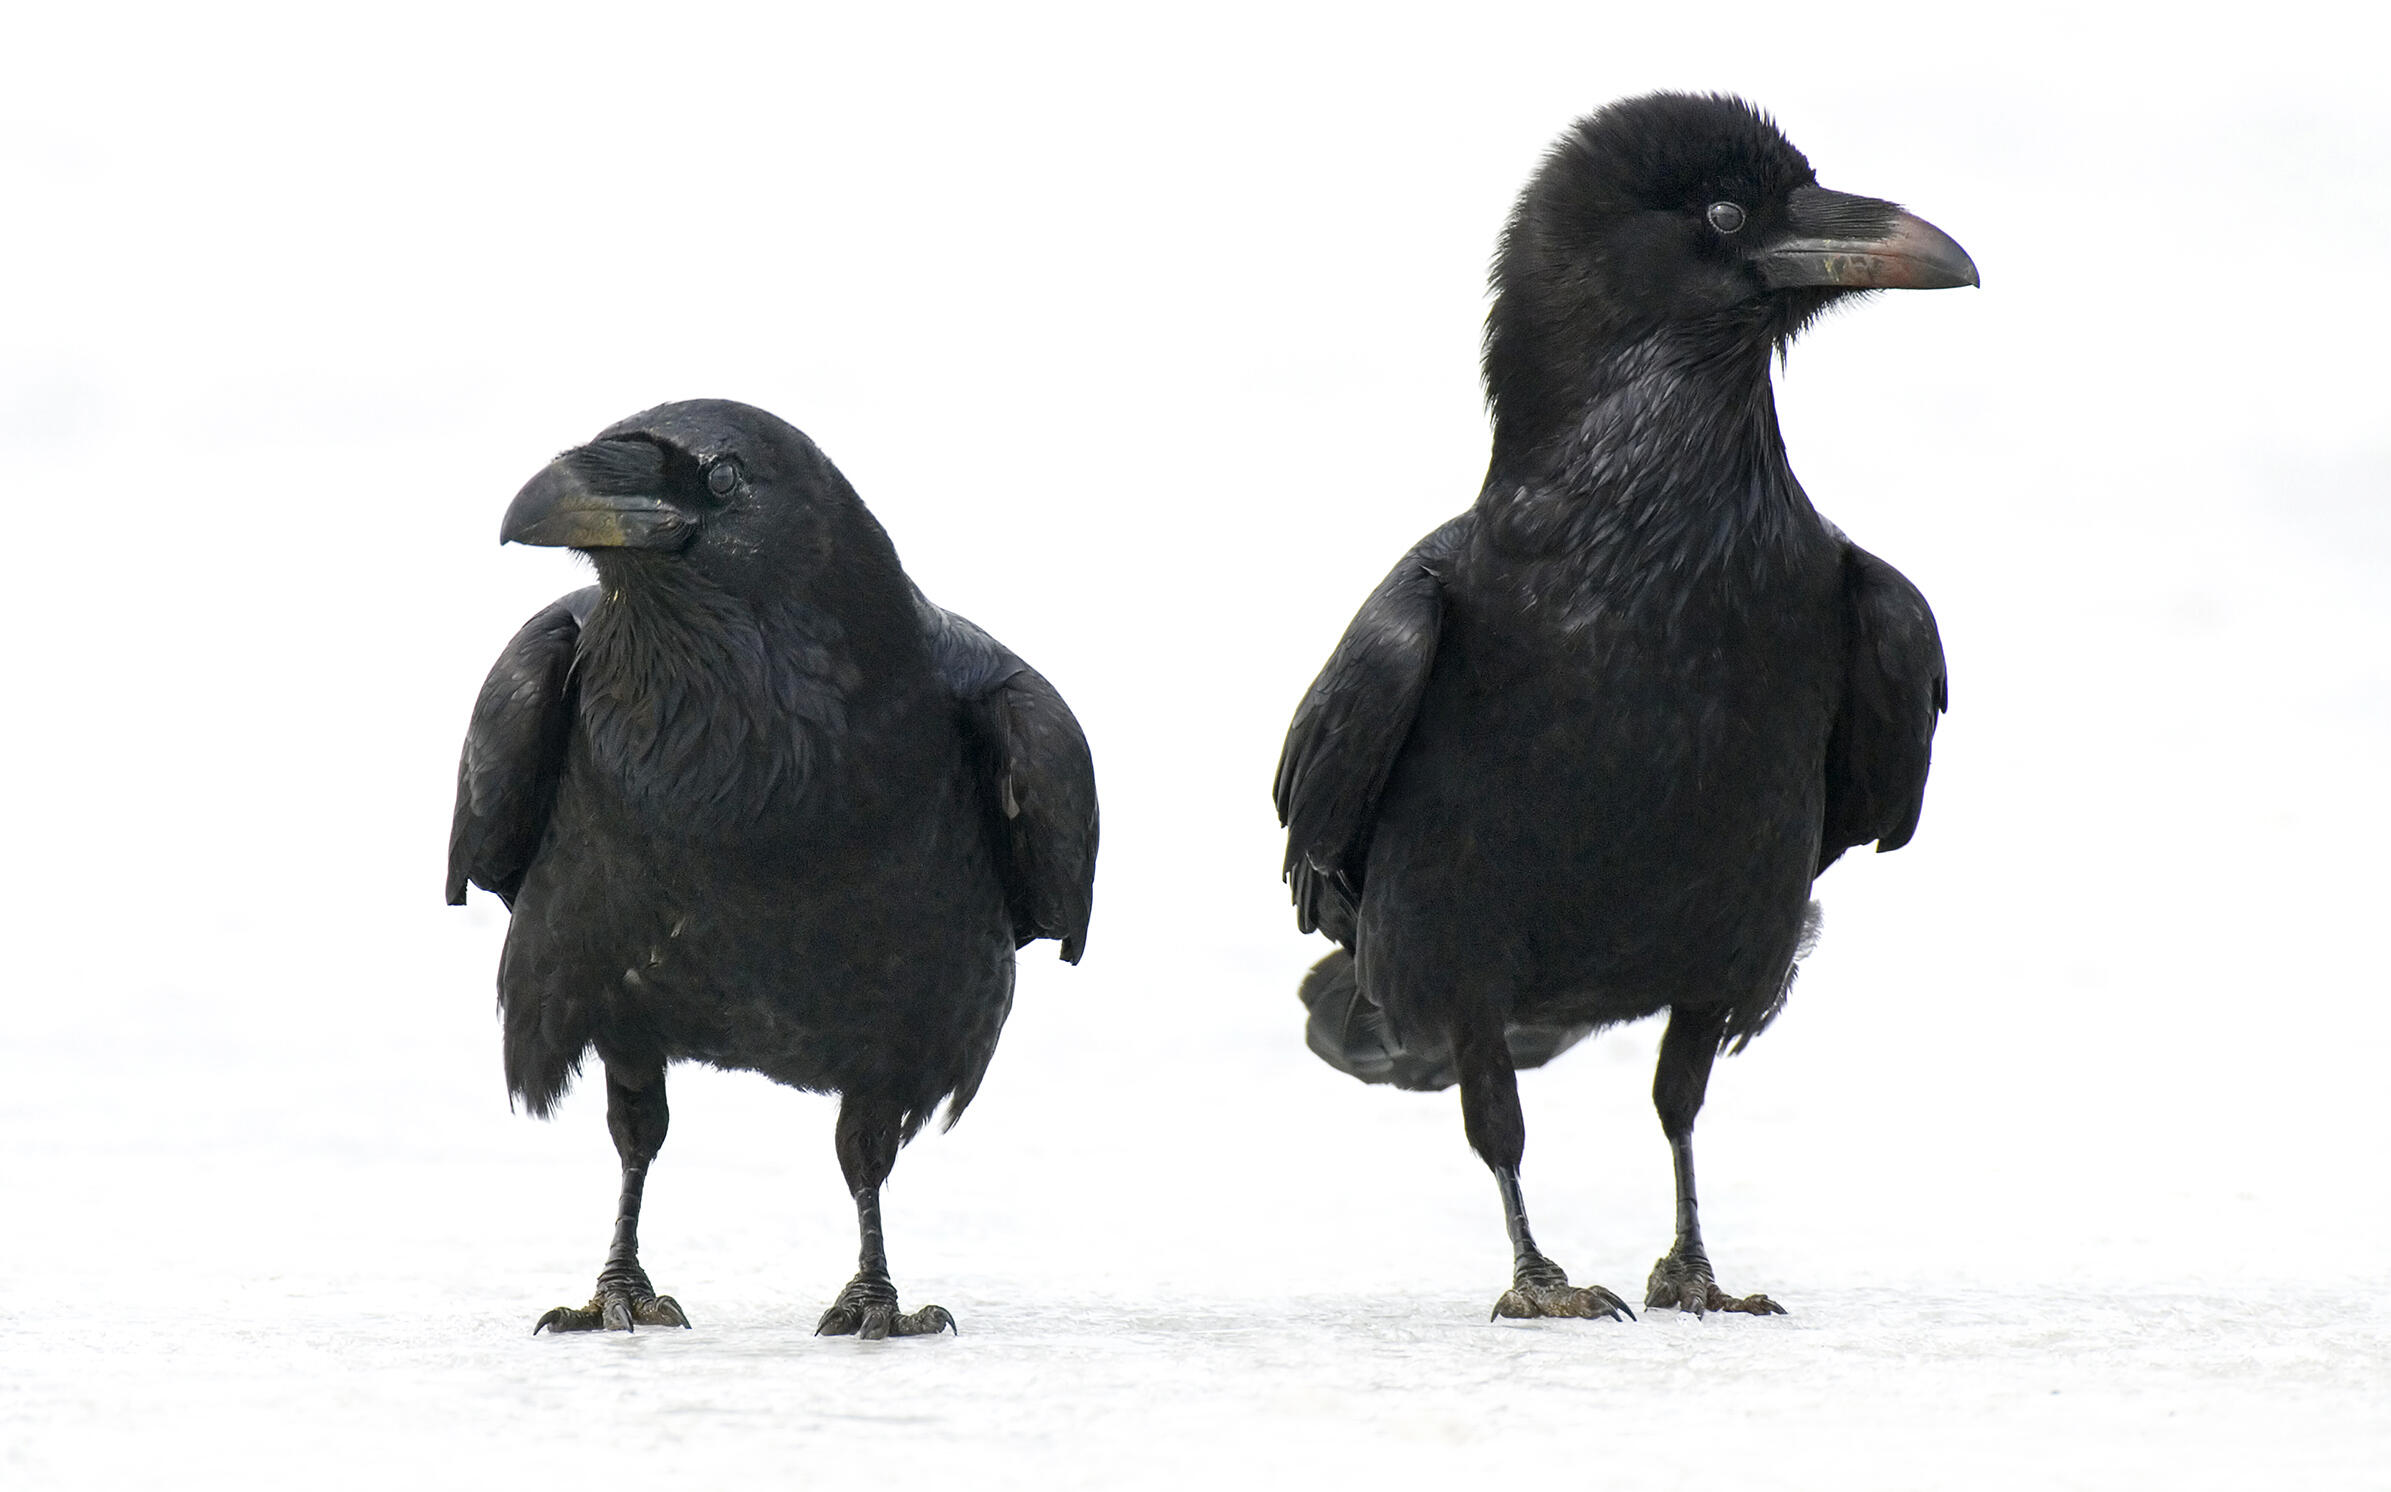 Common Ravens have intricate social lives that include rankings and cooperative relationships. Willi Rolfes/NiS/Corbis